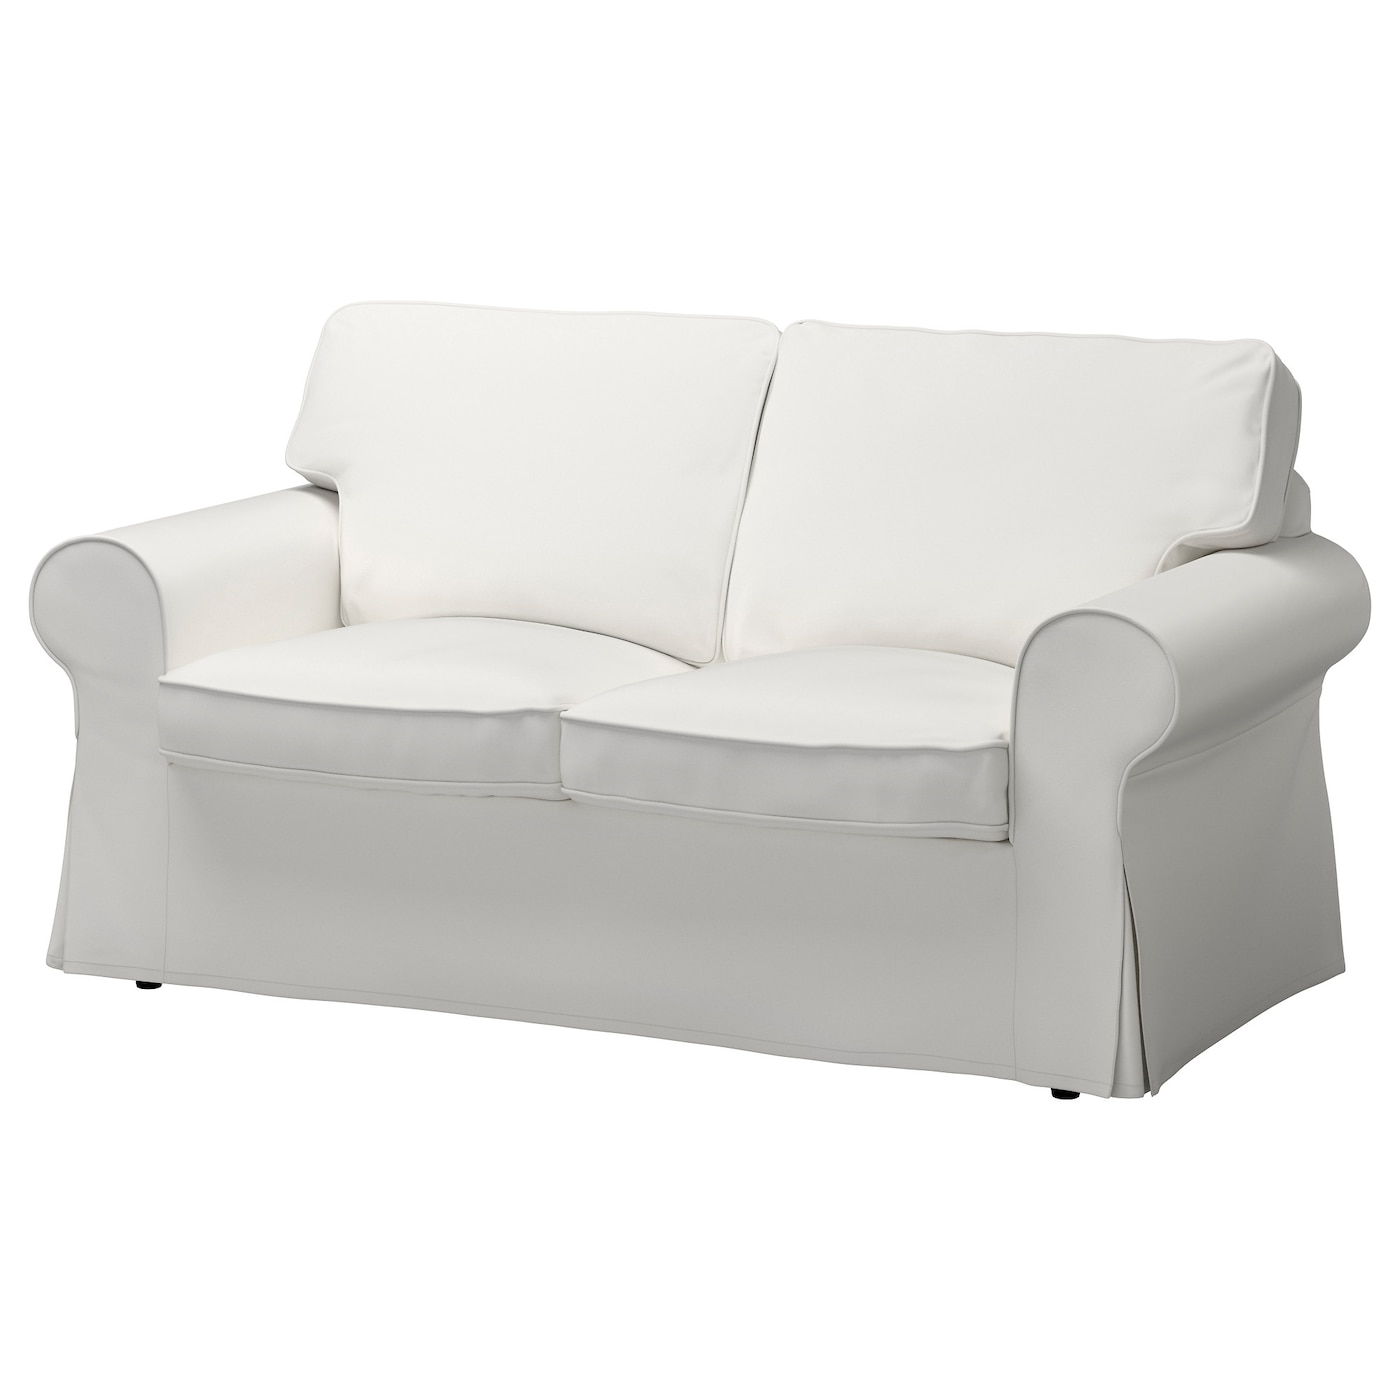 Rp Cover Two Seat Sofa Vittaryd